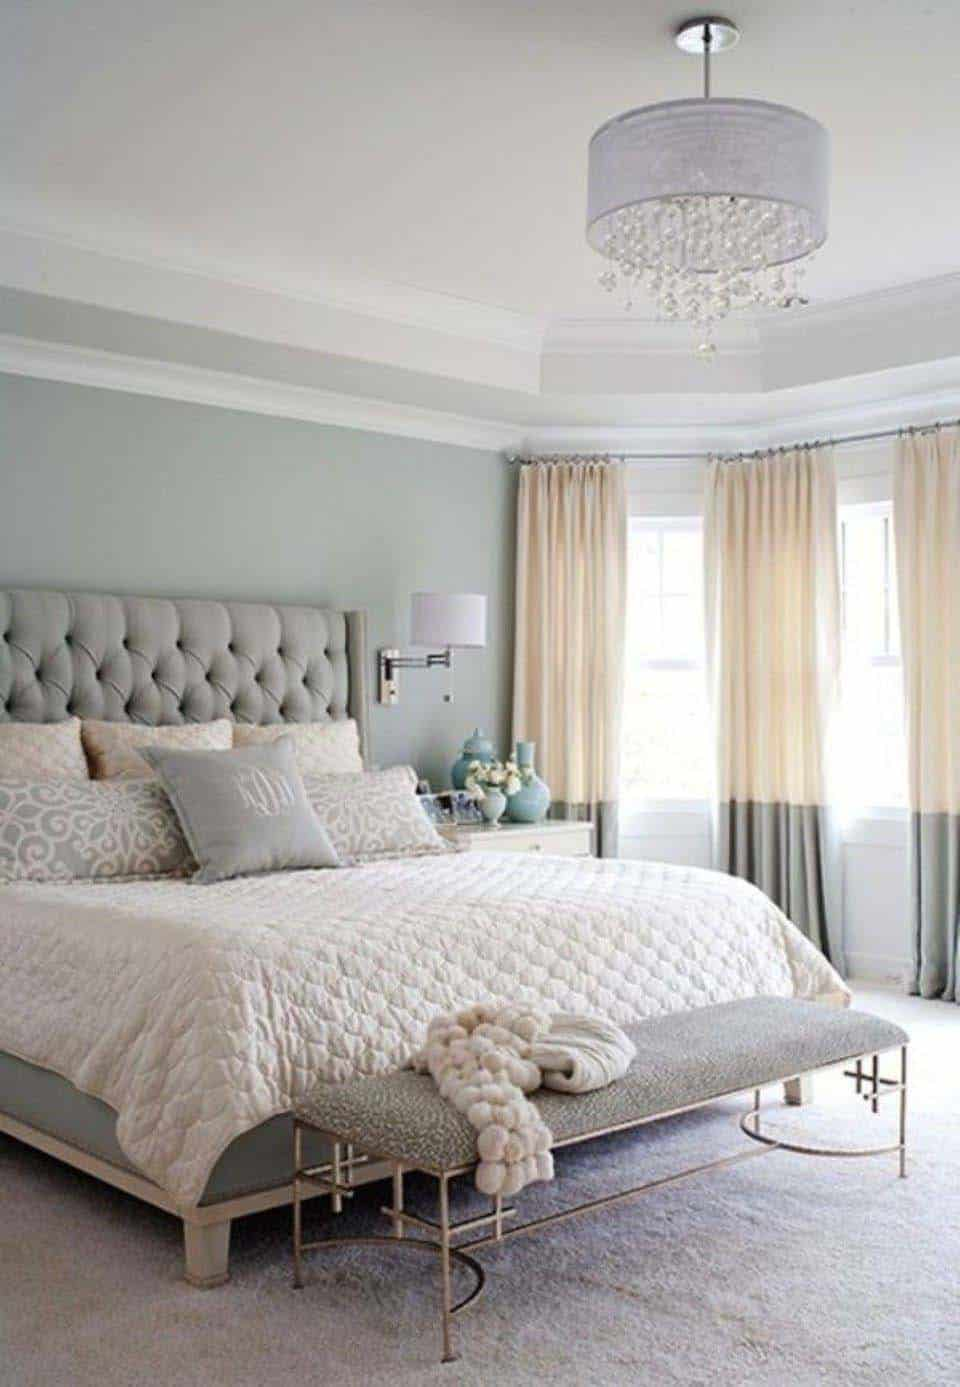 This Master Bedroom Is Filled With A Layering Of Textures In Soothing Color Scheme Tufted Headboard Complimented Plush Bedding